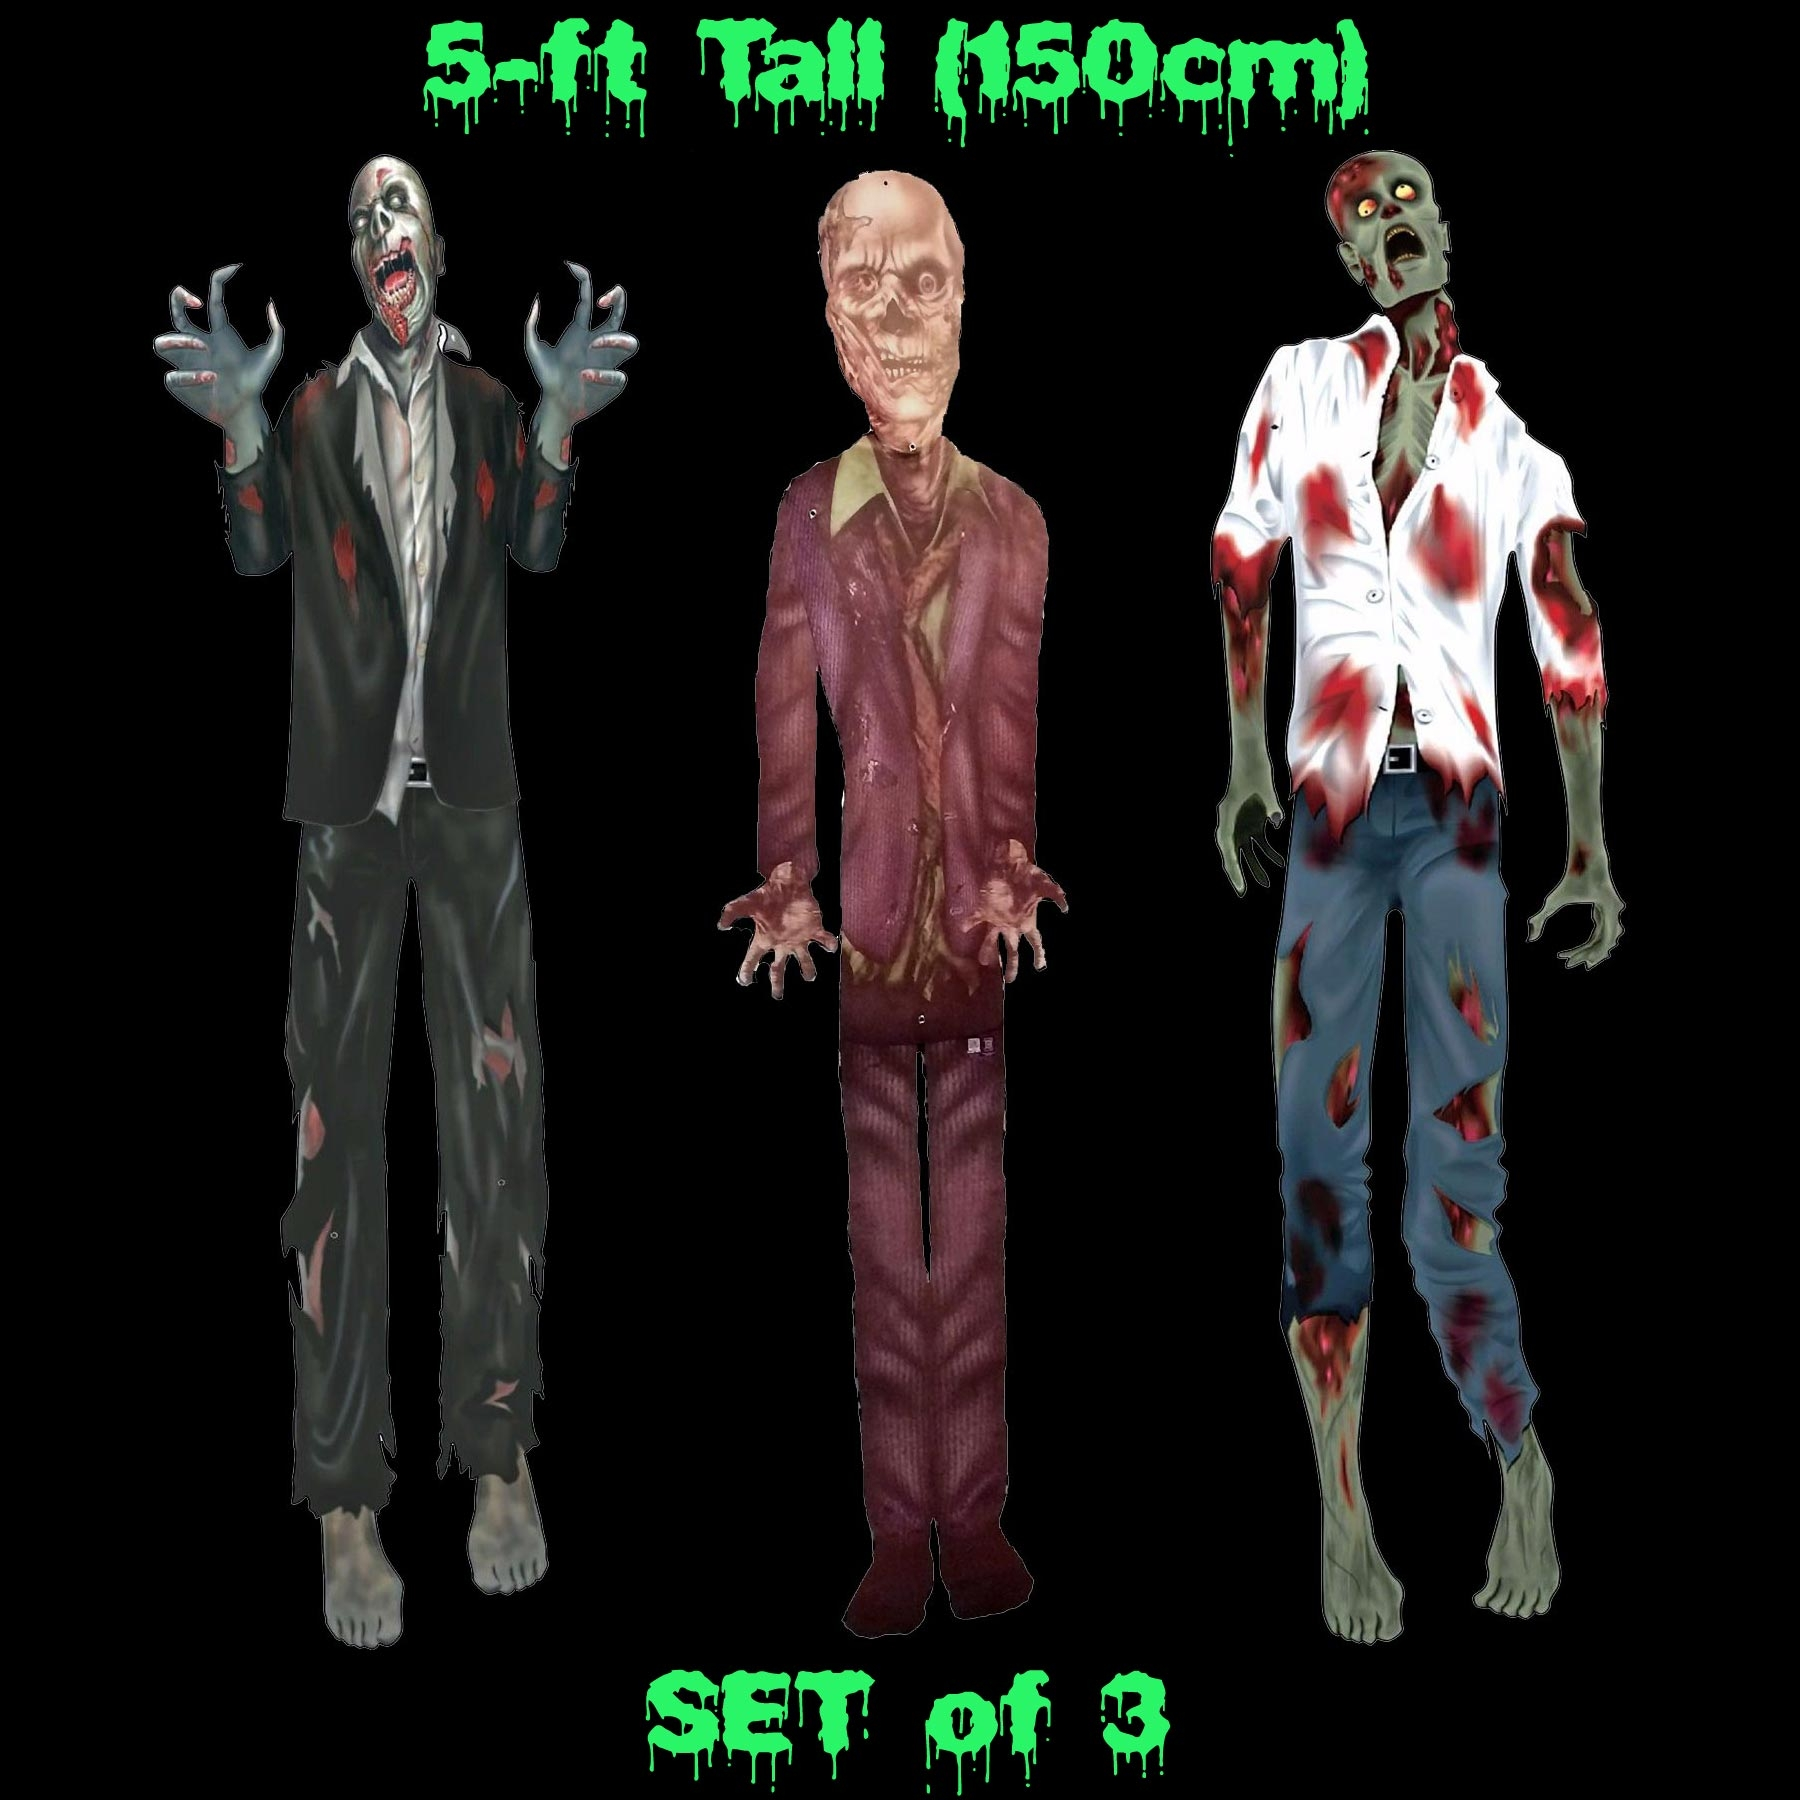 jointed paper cardboard cutouts wall horror decor halloween party